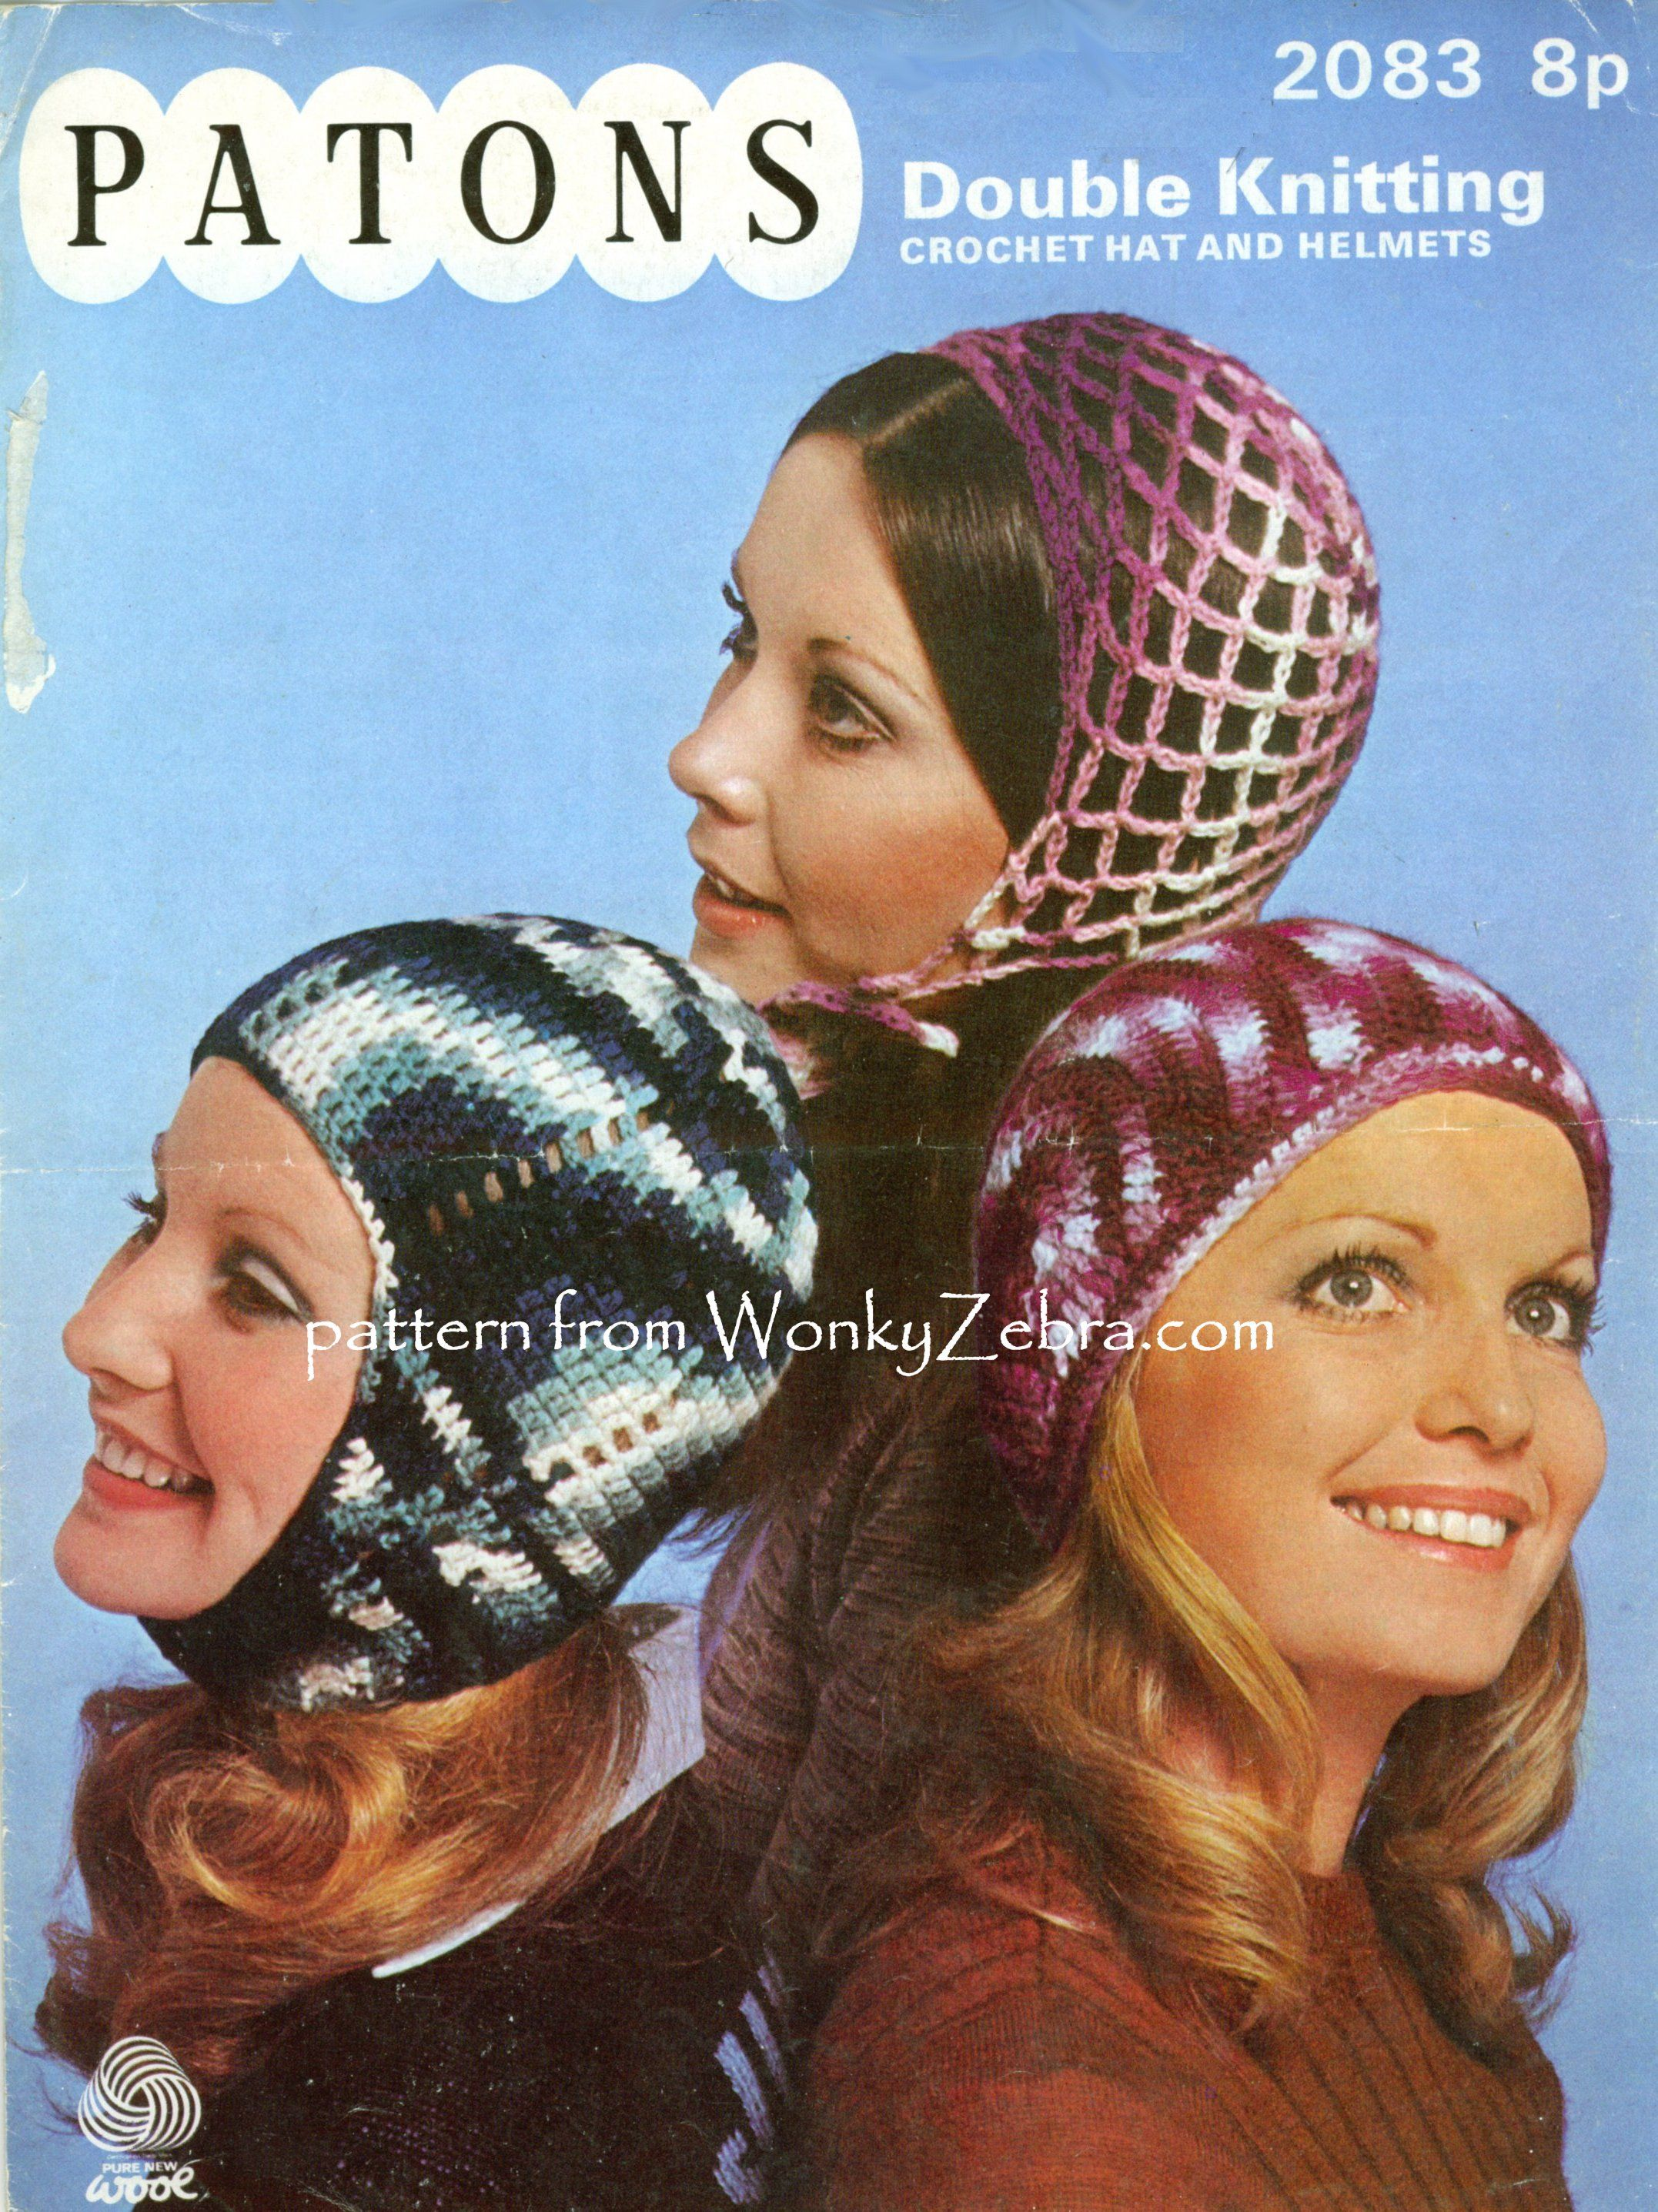 WZ107, totally mad retro headgear ...crochet hats from the 70s including a Juliette cap, and balaclava. Patons 2083